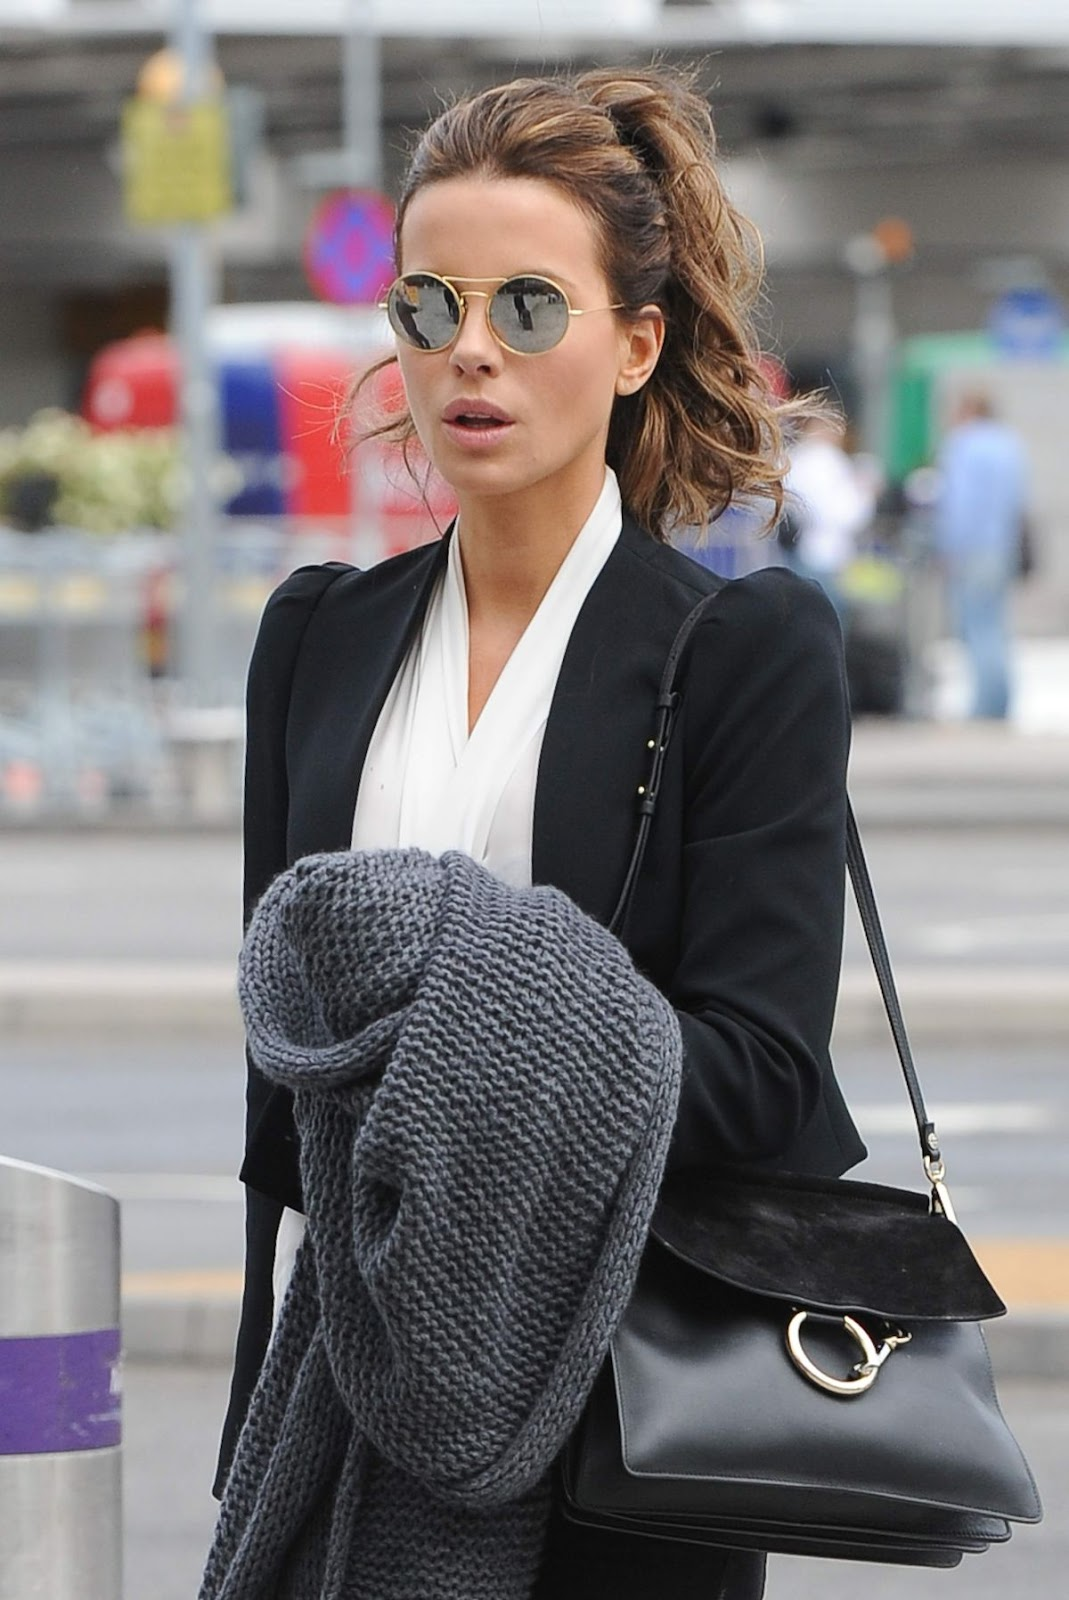 Full HQ Photos of Kate Beckinsale Arrives At Heathrow Airport In London